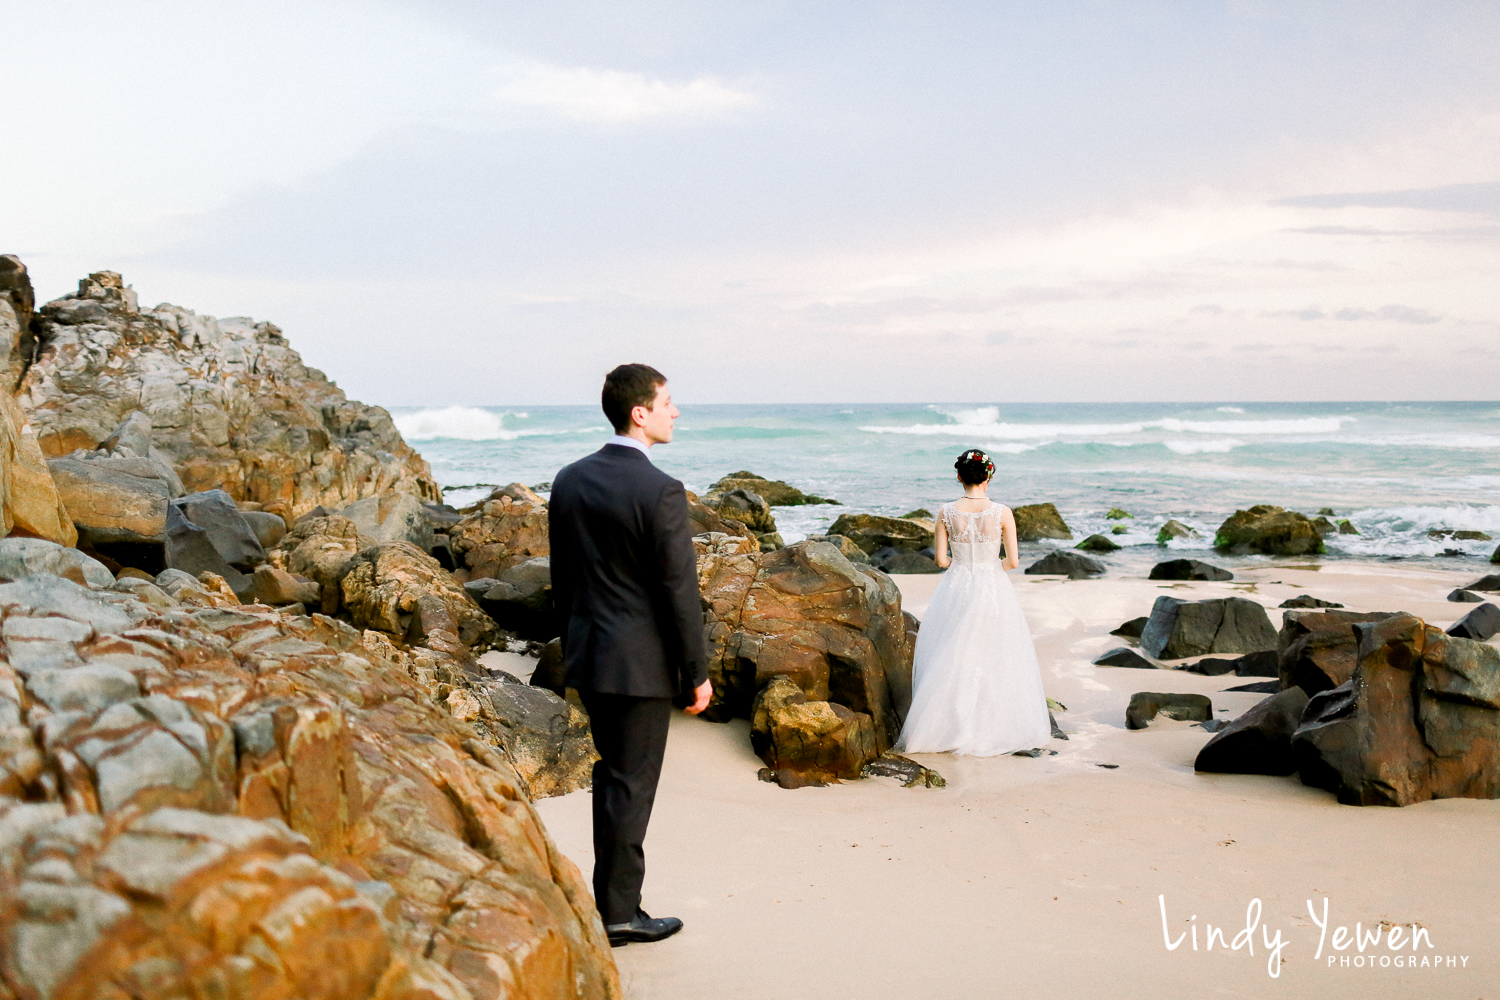 Sunshine-Beach-Weddings-Dimitrije-Maria 317.jpg